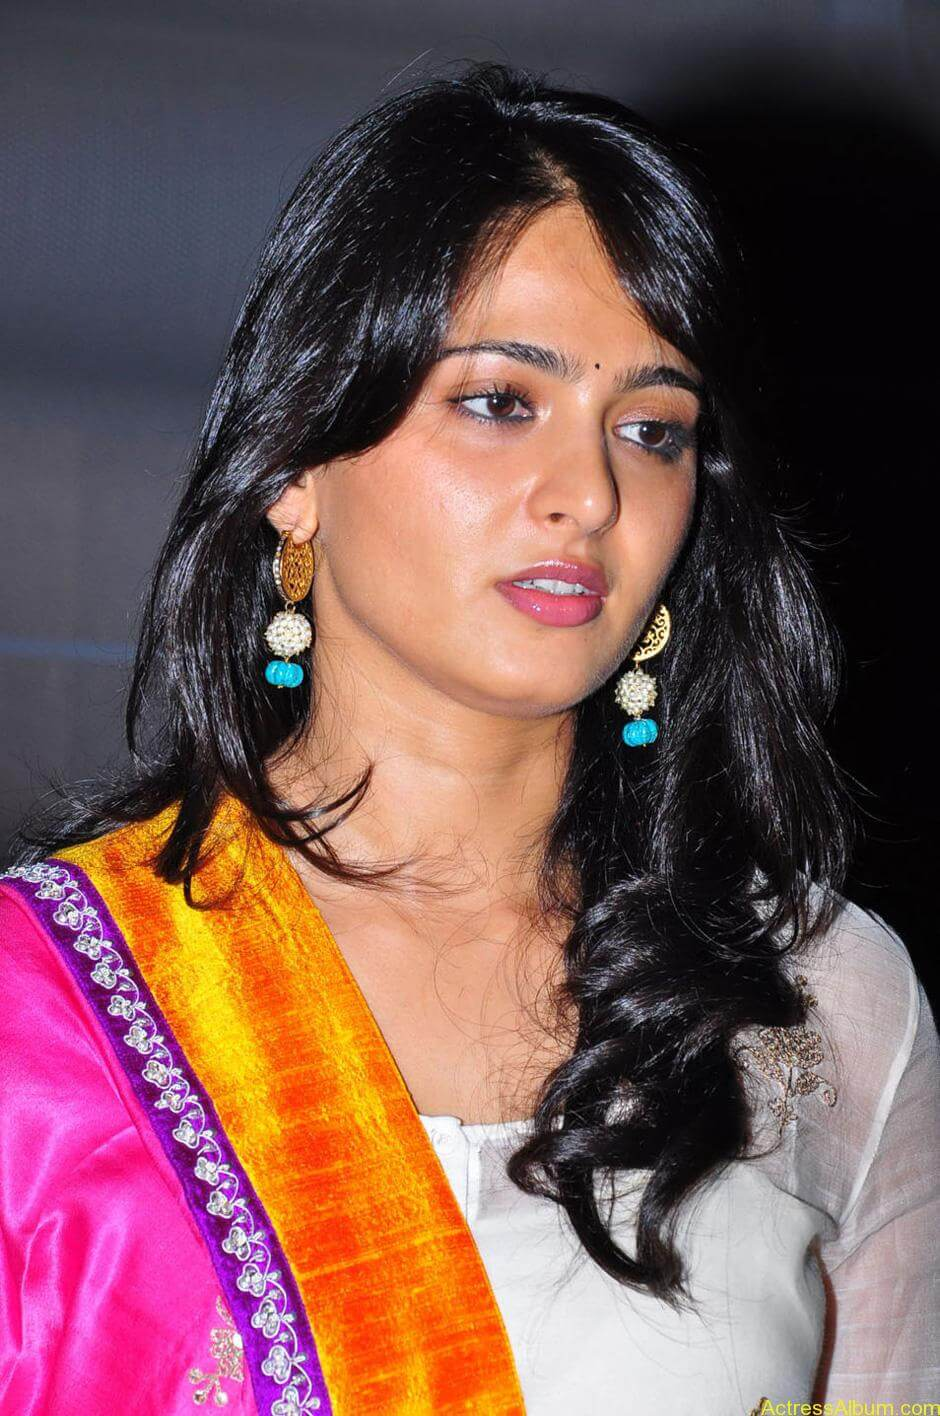 Anushka-Shetty-05-23-2011-Stills-004